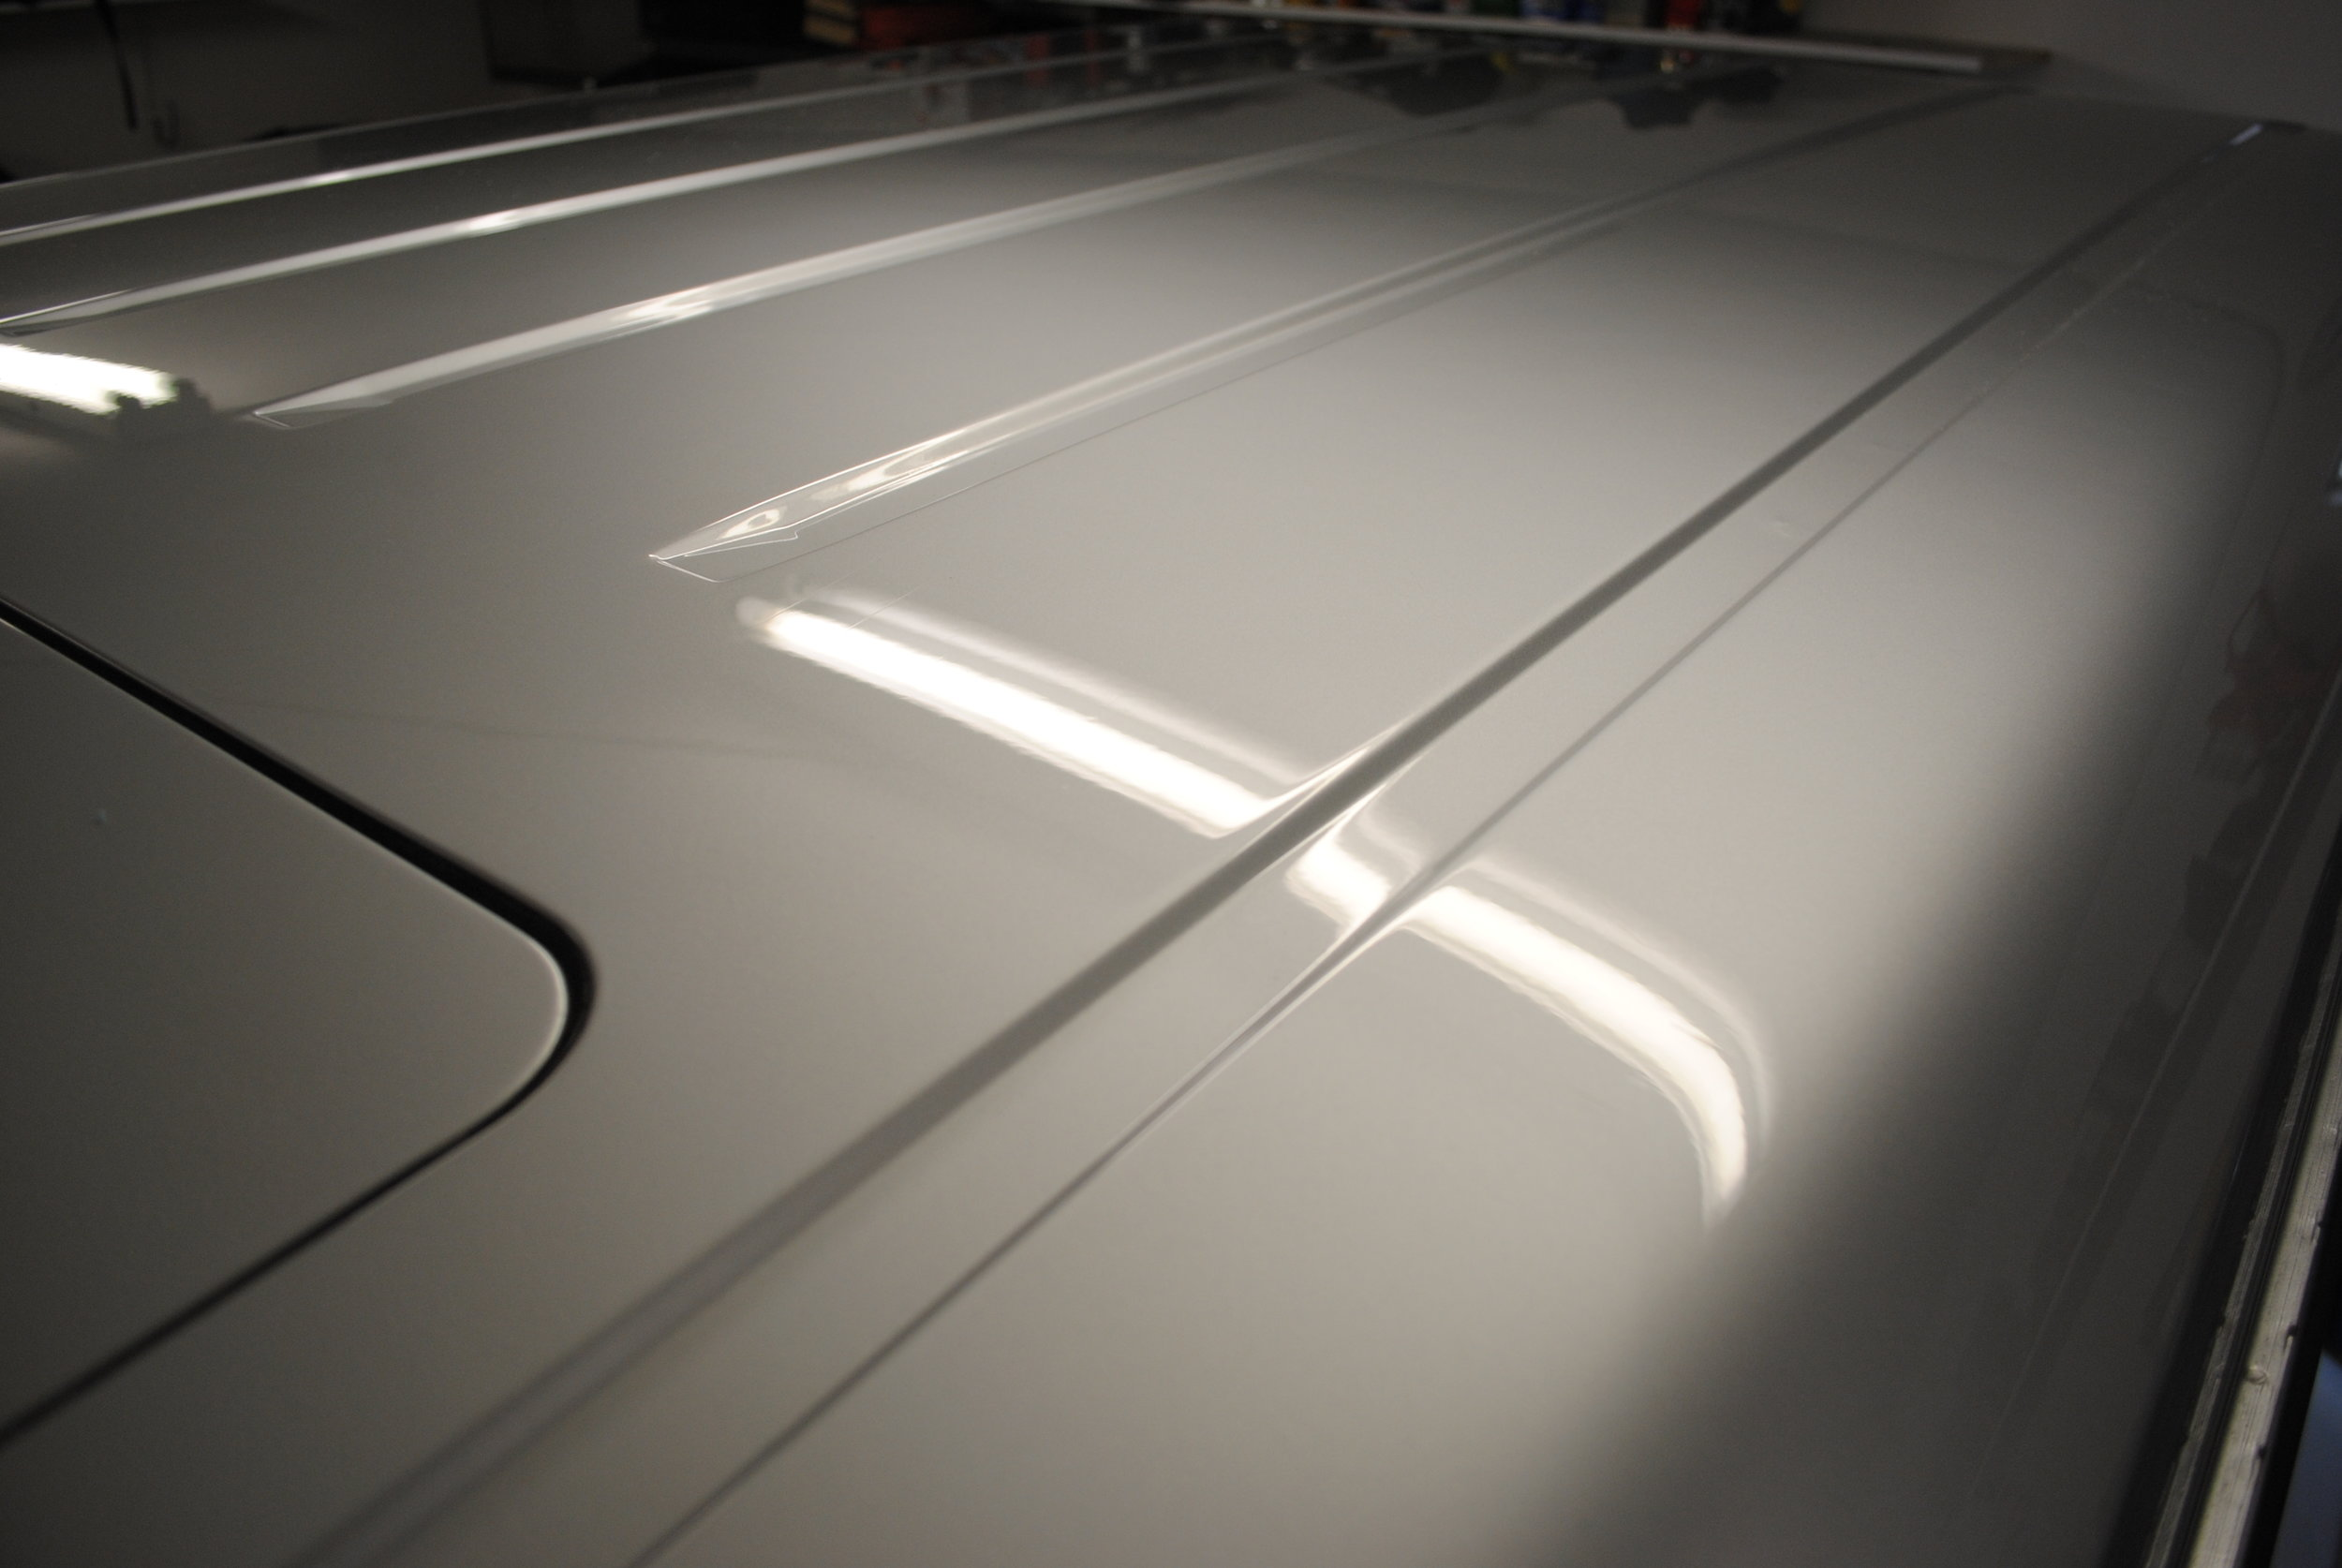 Post spot polish, removed any visible damage, deep scratches to be wetsanded